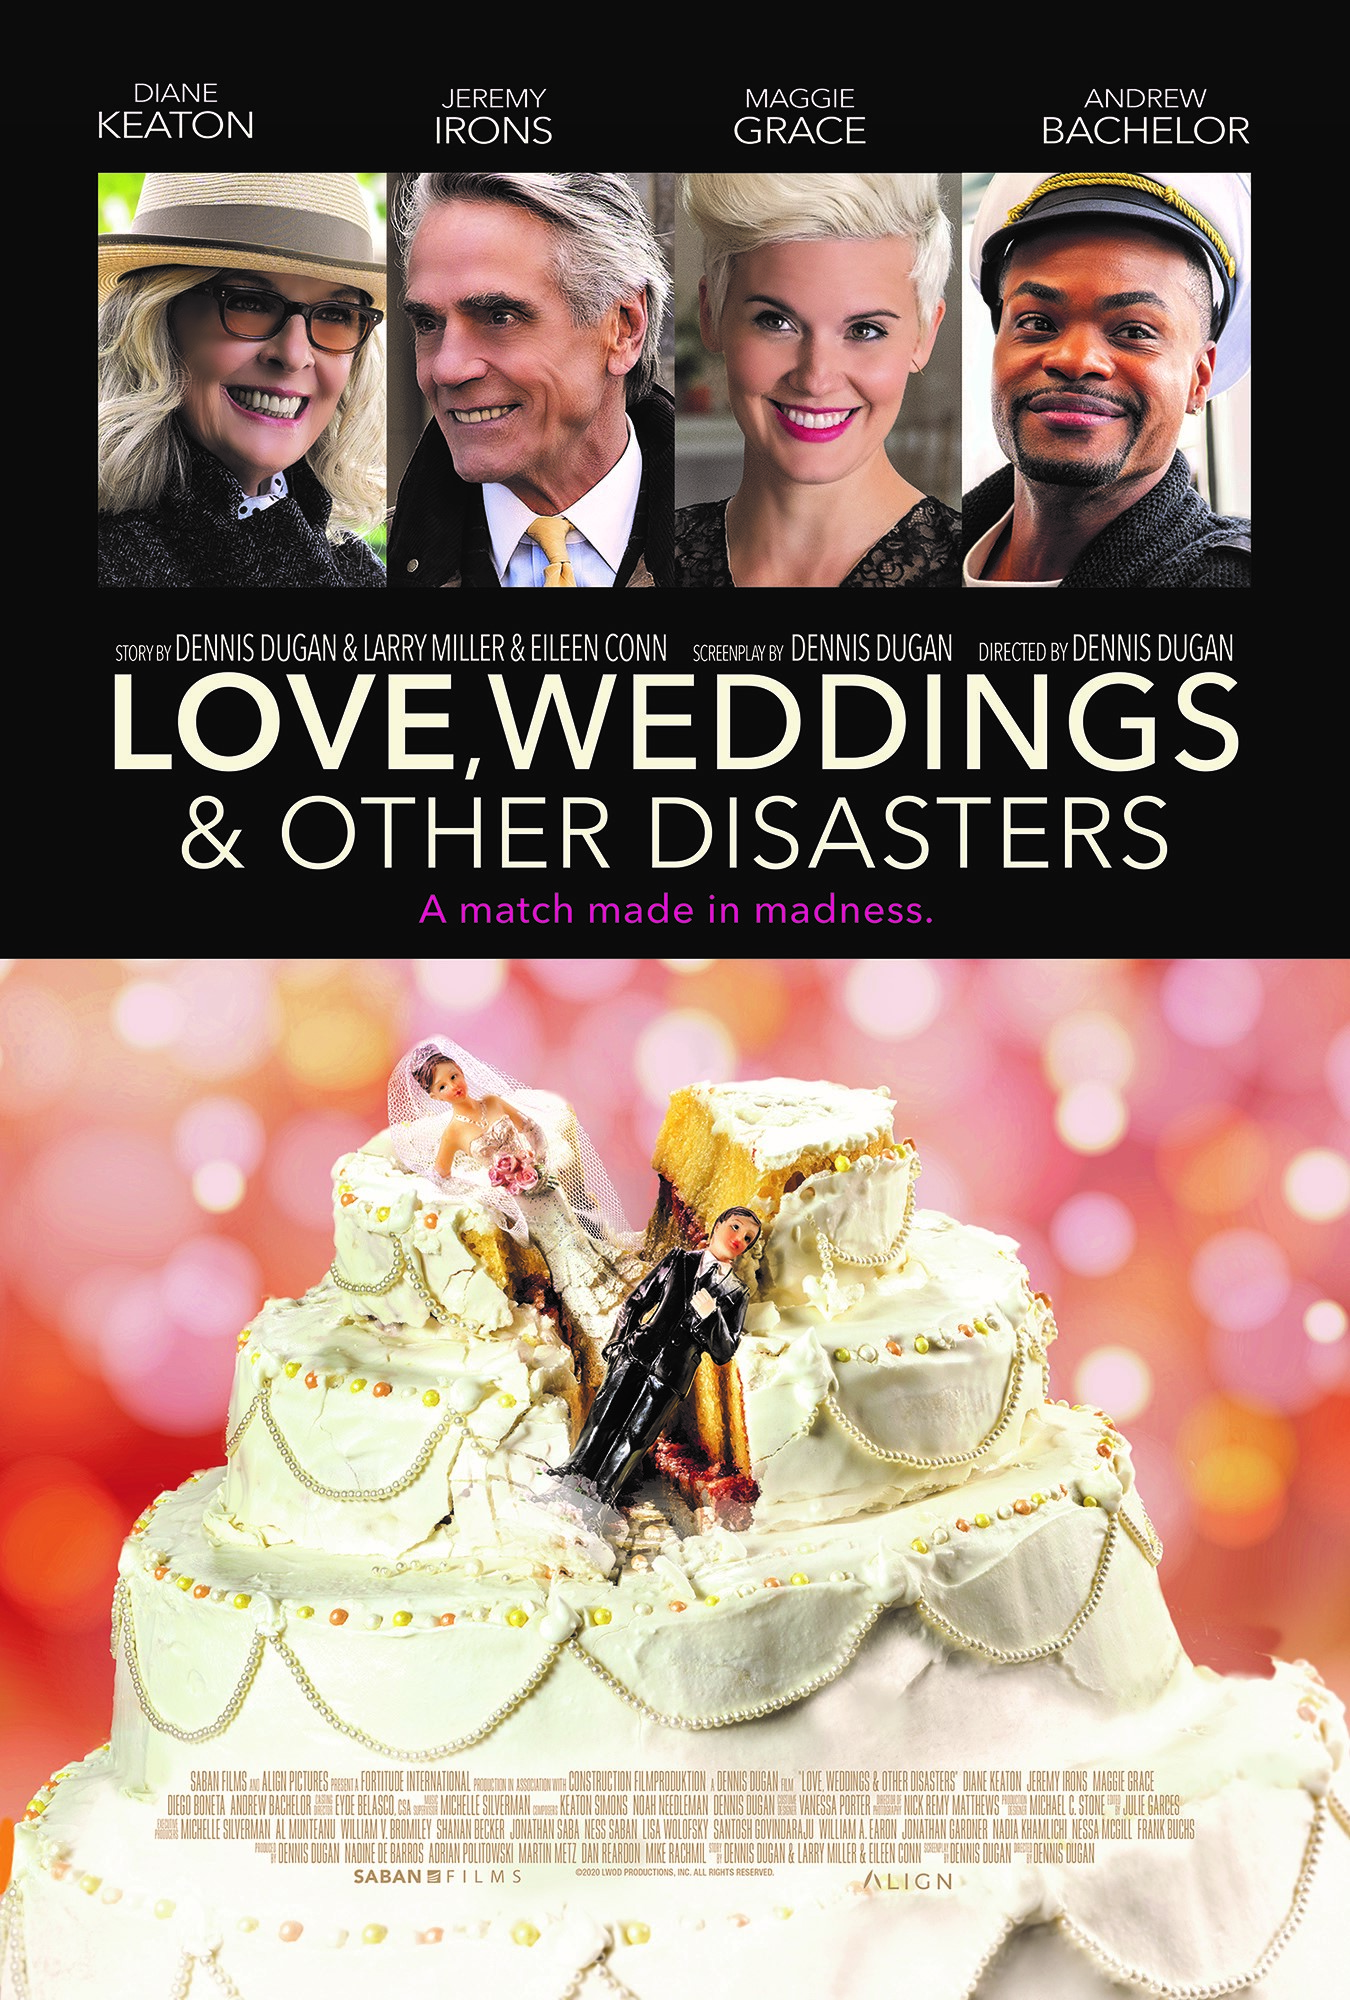 Love, Weddings & Other Disasters (2020) - IMDb